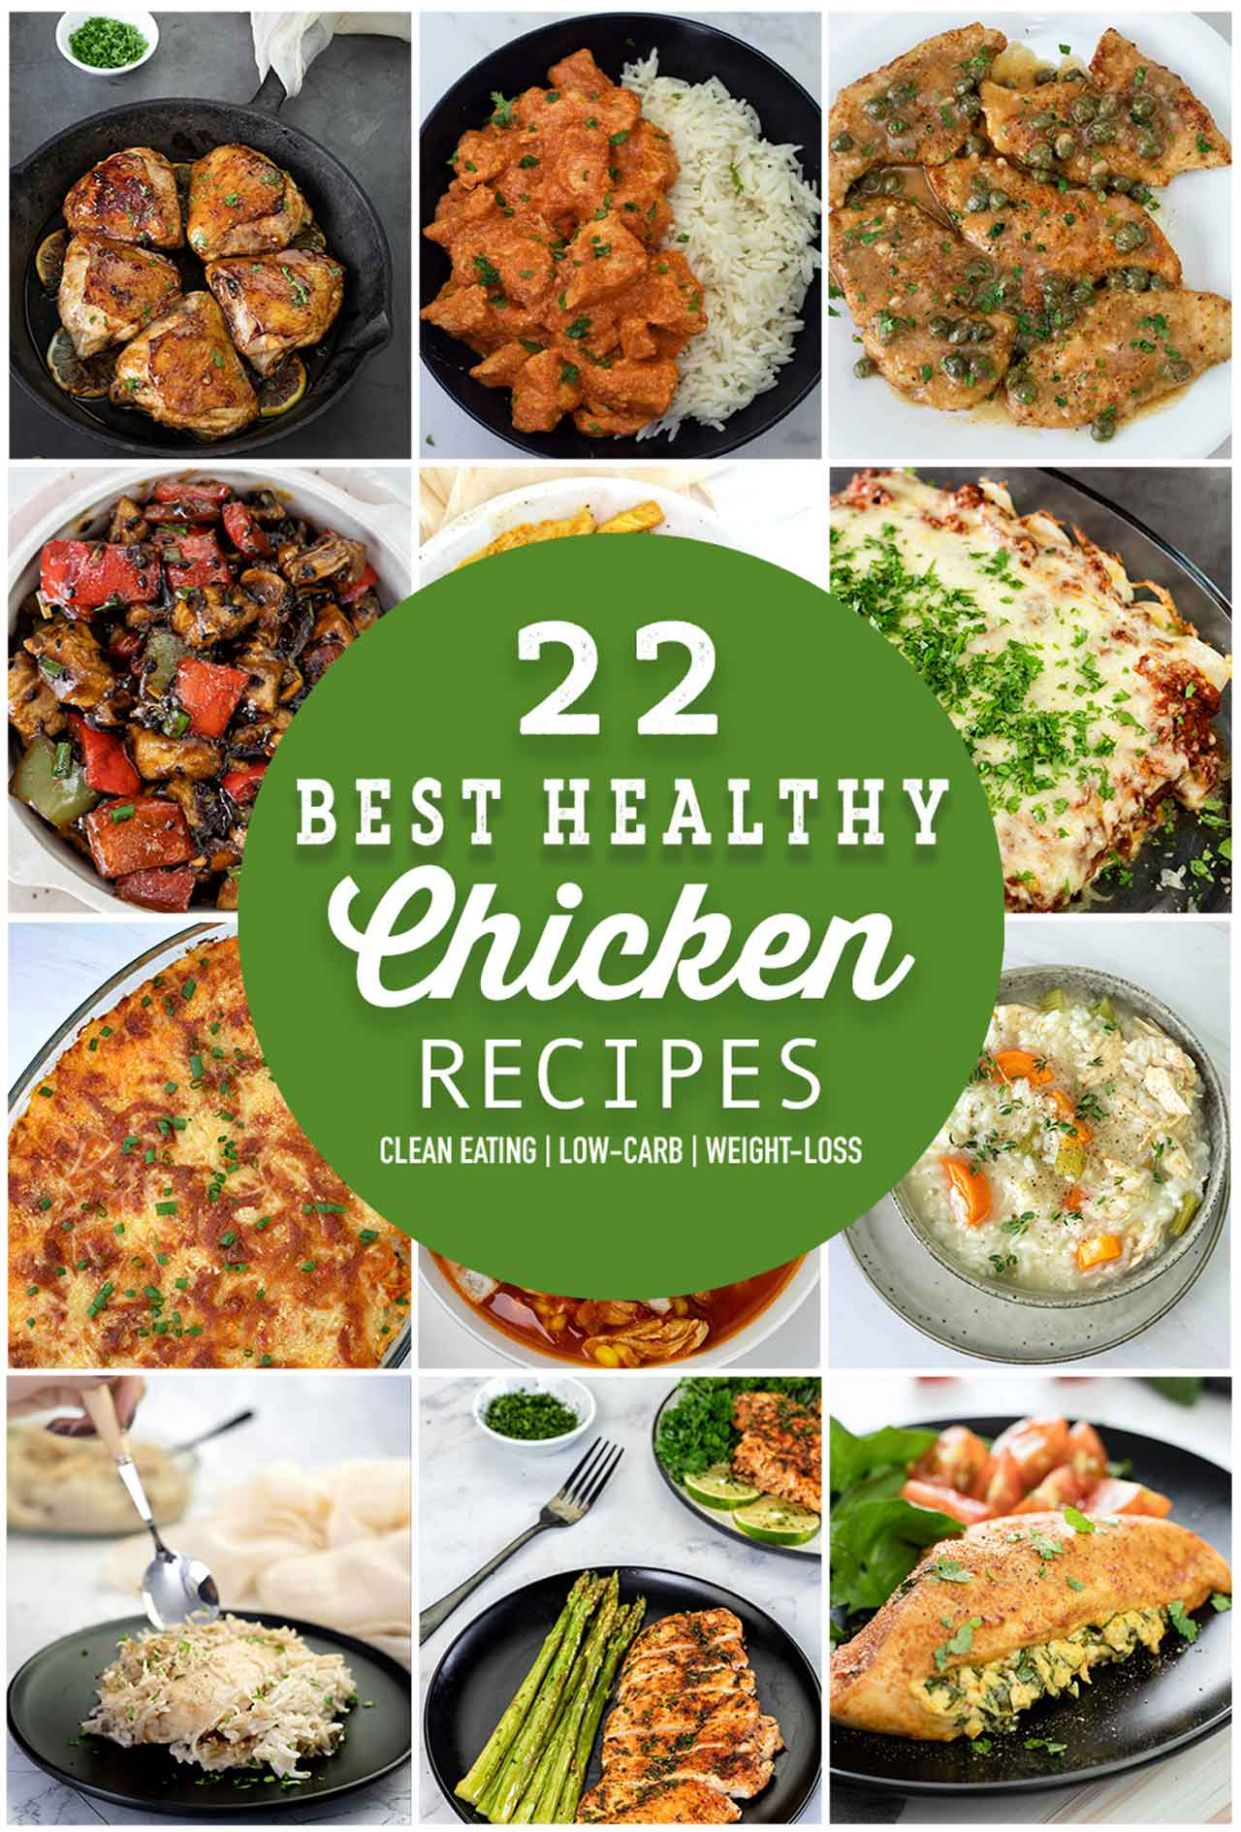 11 Best Healthy Chicken Recipes - A List For The White Meat Lovers - Healthy Recipes For Weight Loss Chicken